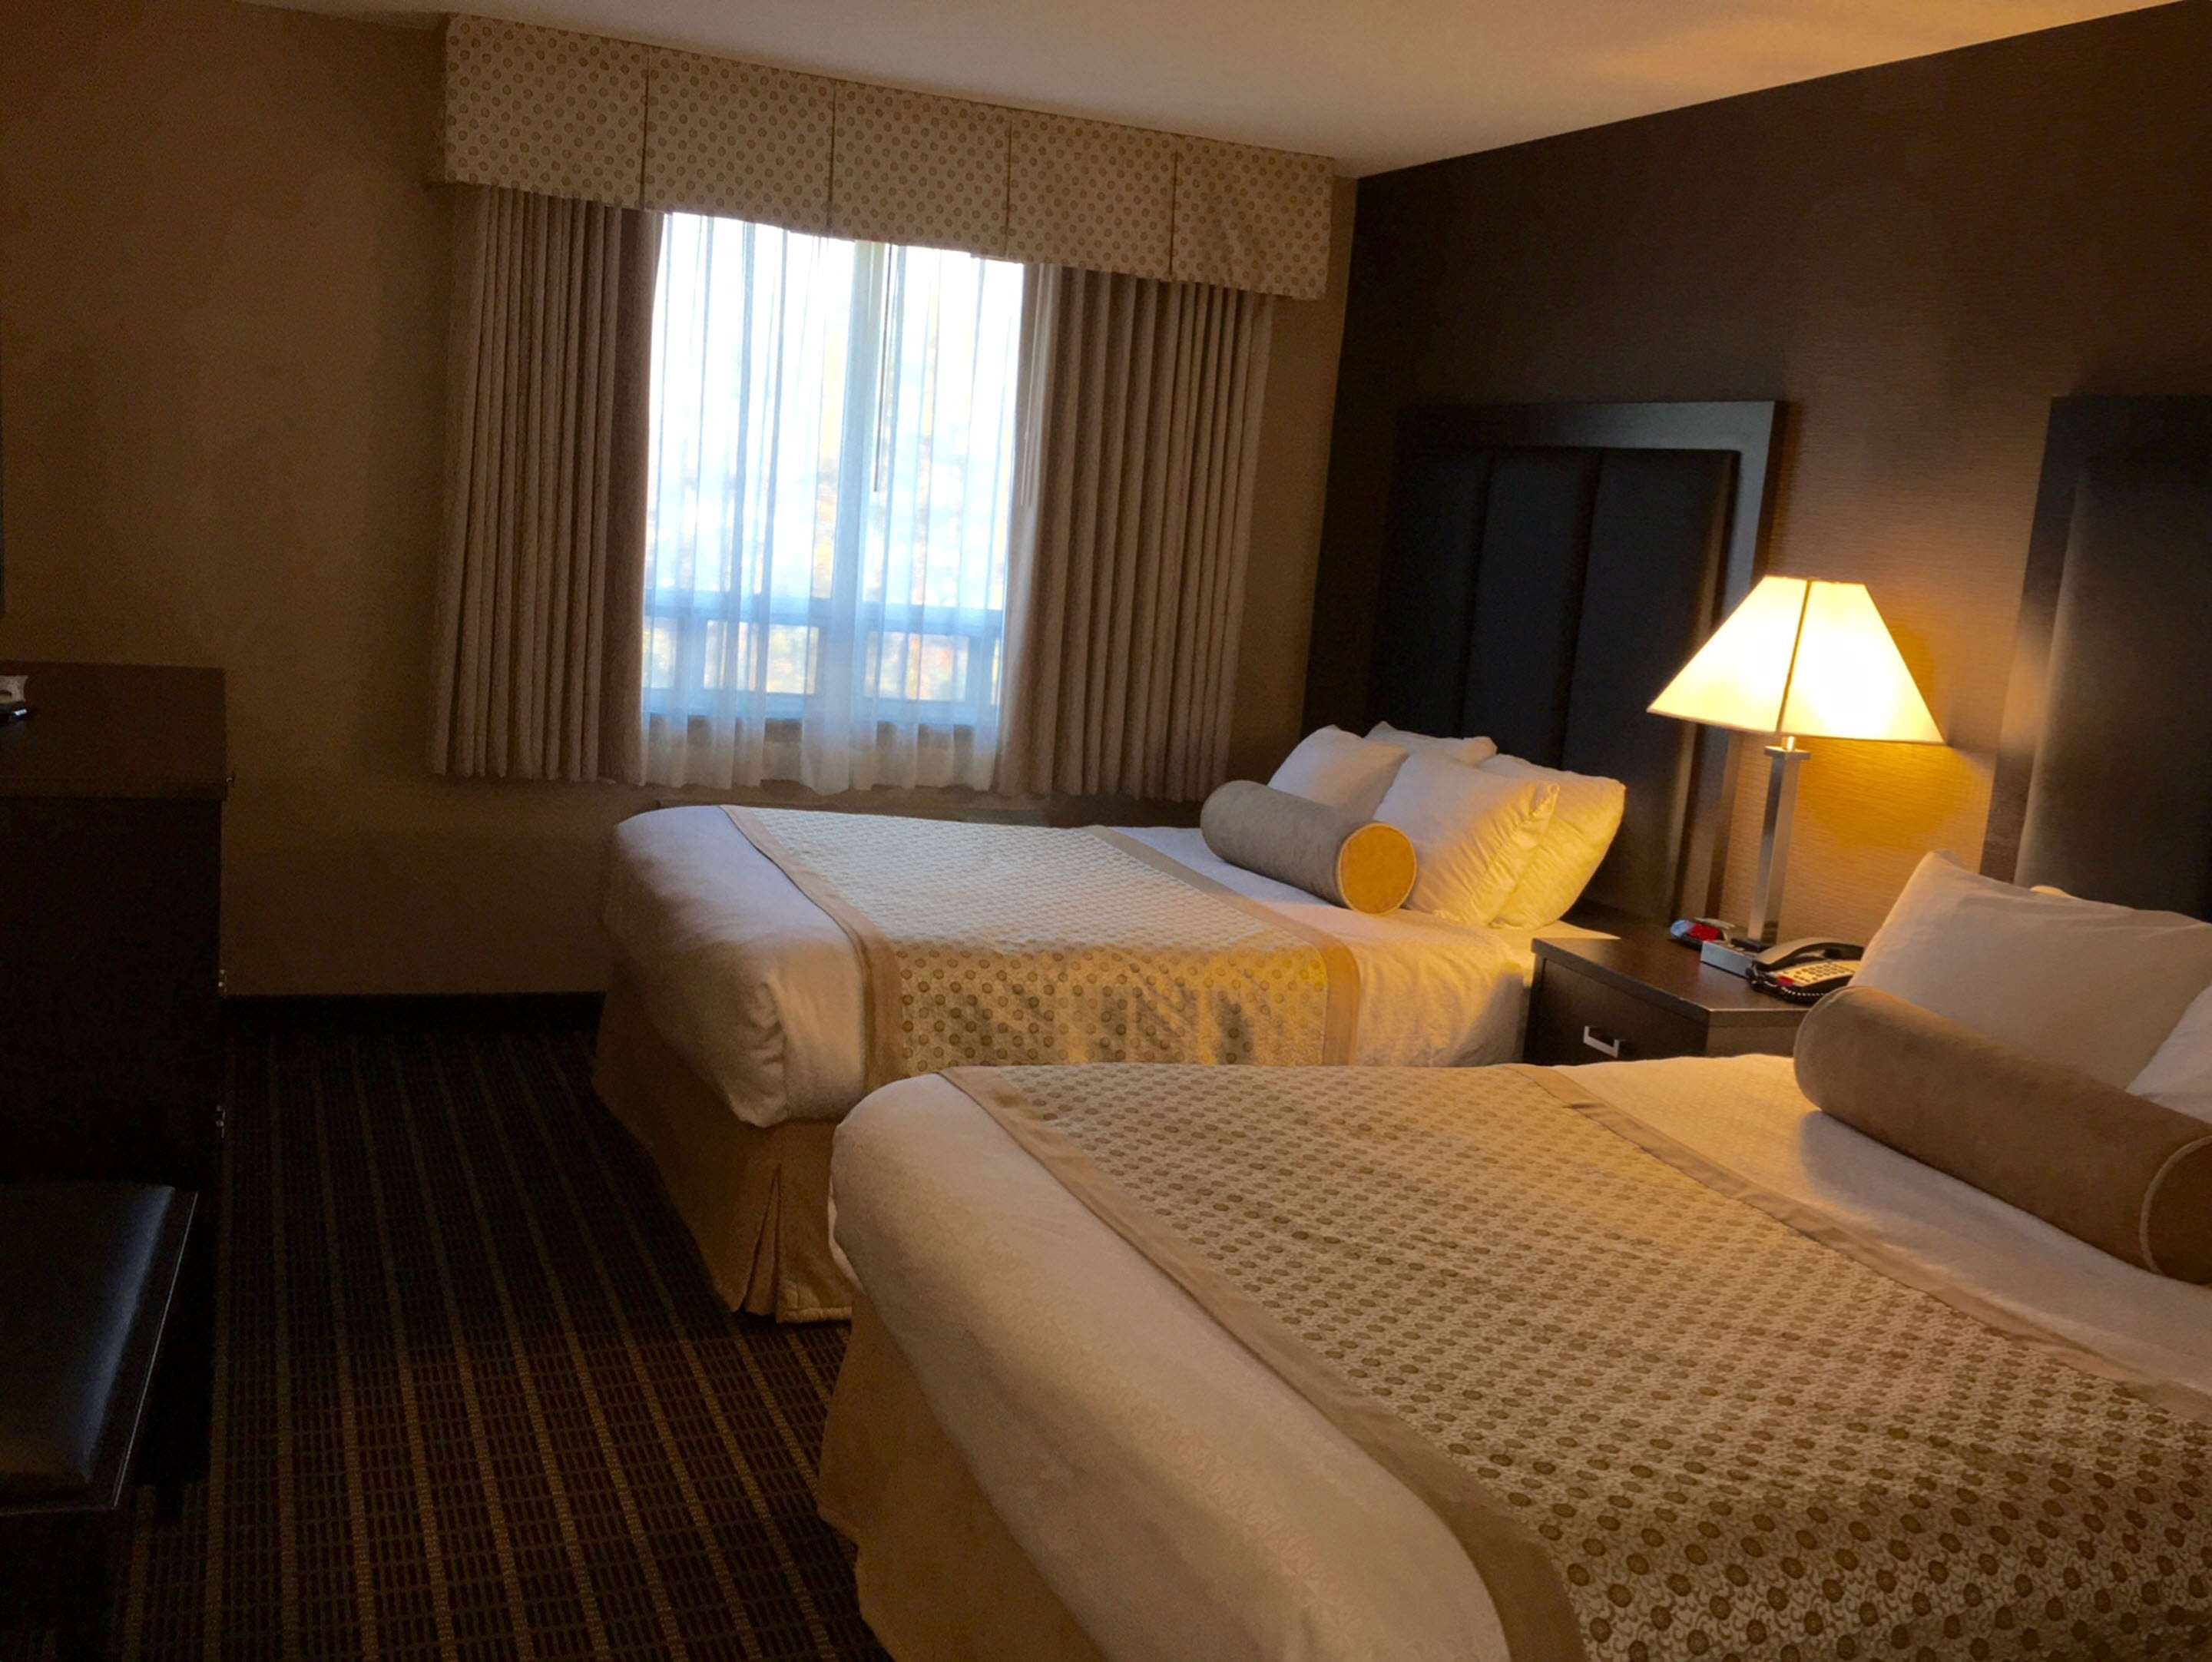 Double Queen Guest Room Best Western Plus Burlington Inn & Suites Burlington (905)639-2700